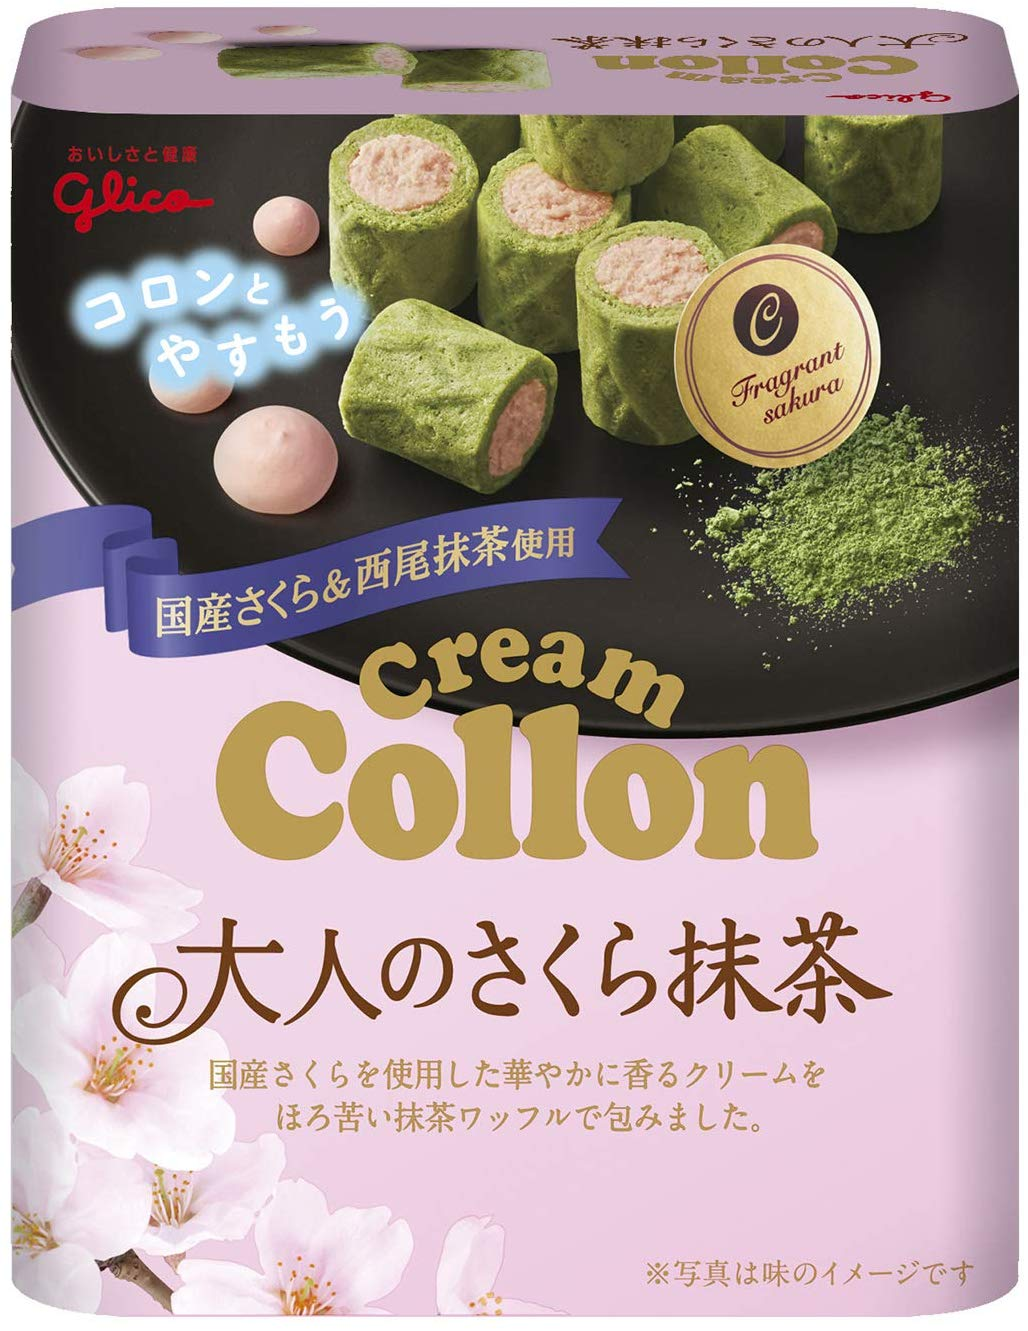 Cream Collon  大人的櫻花抹茶口味